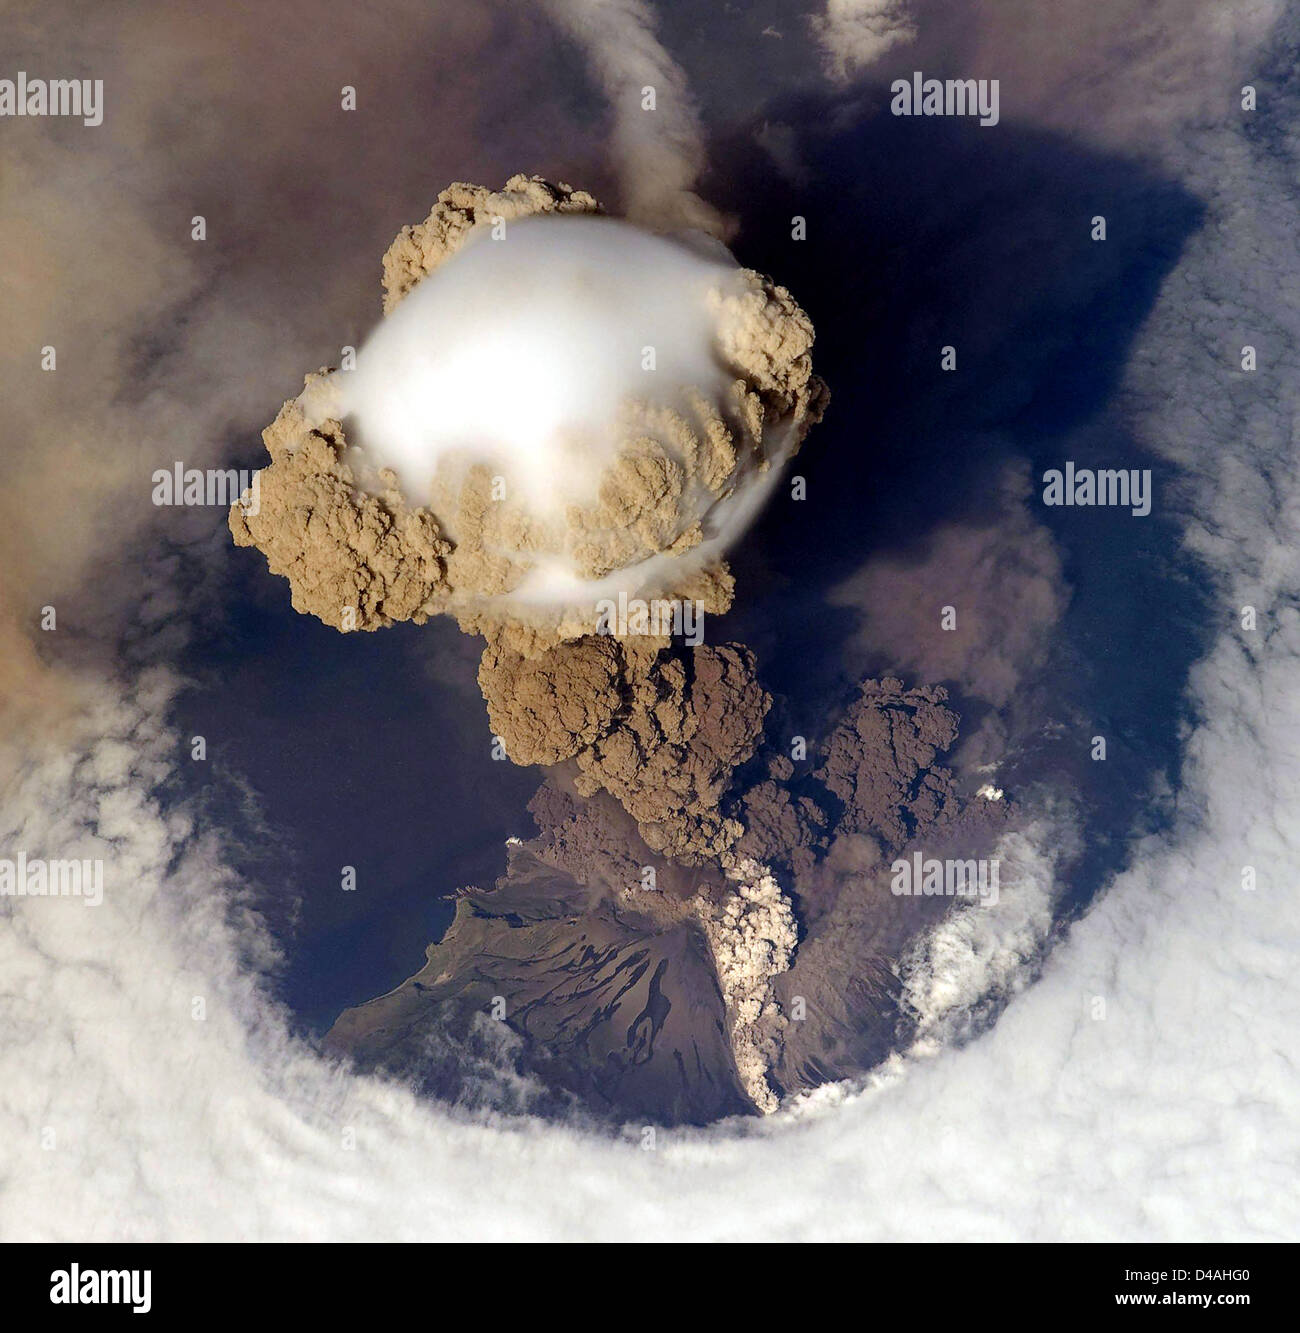 Volcano erupting, Volcanic eruption, Russia's Sarychev Volcano, located in the Kuril Islands, erupting, as seen - Stock Image